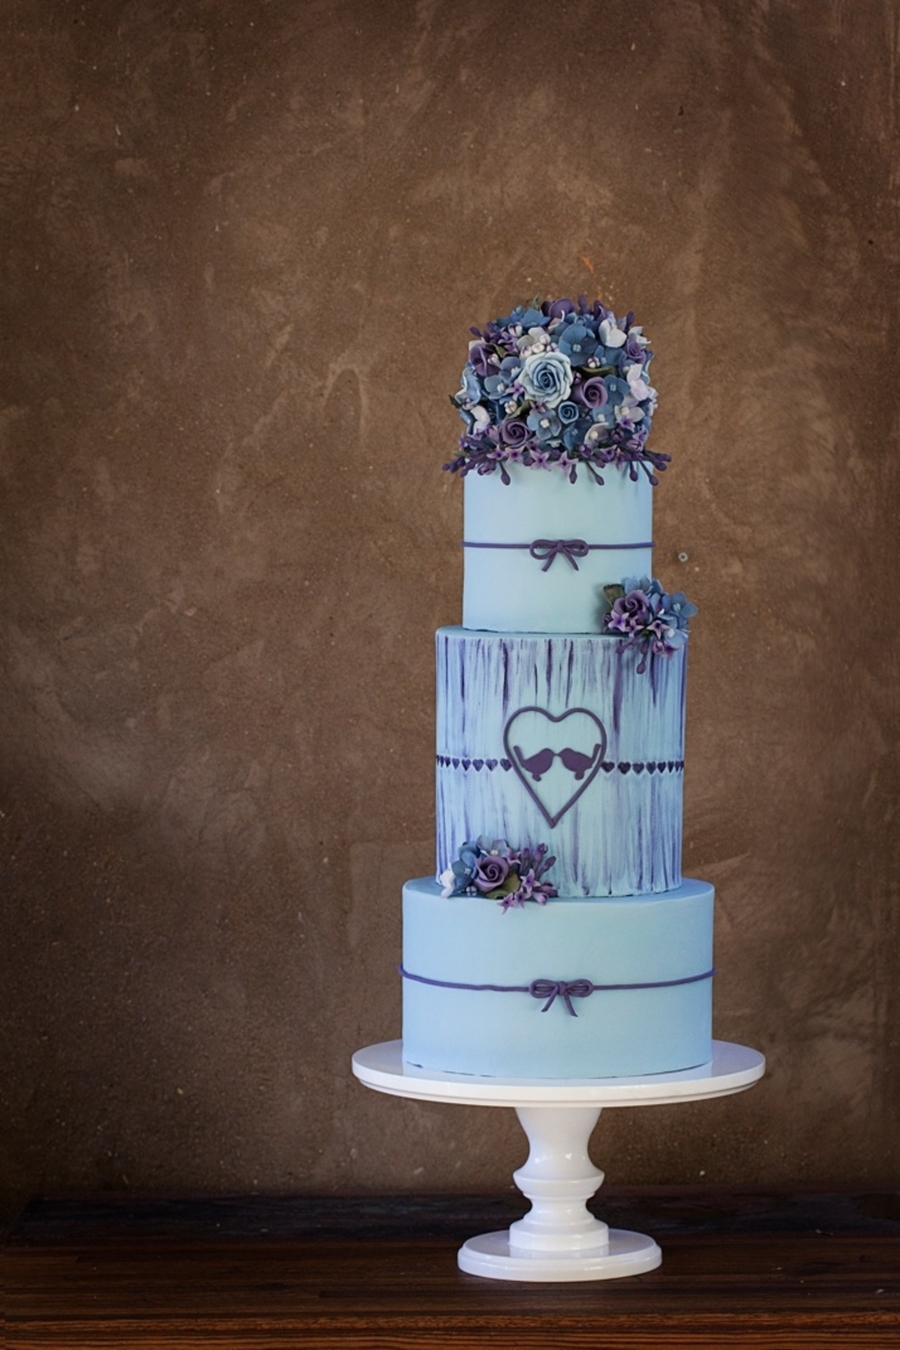 I Was So Excited To Be Asked Submit A Wedding Cake For Centrals Purple And Blue Theme But Even More Finding Out It Made In